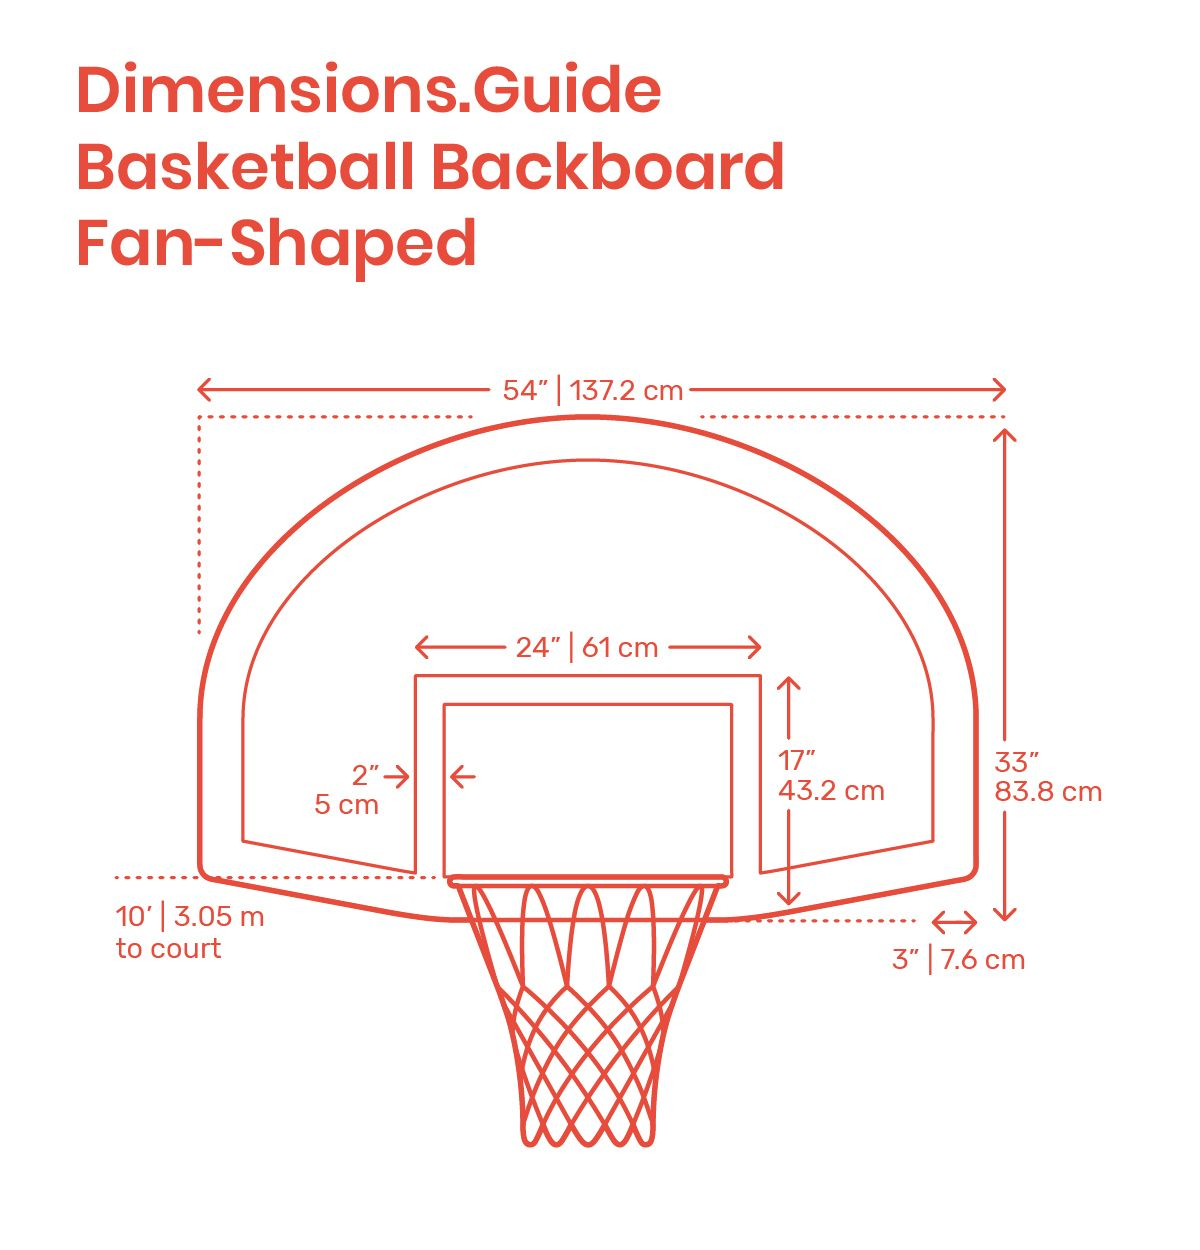 Basketball Backboard Fan Shaped Basketball Backboard Basketball Backboards Basketball